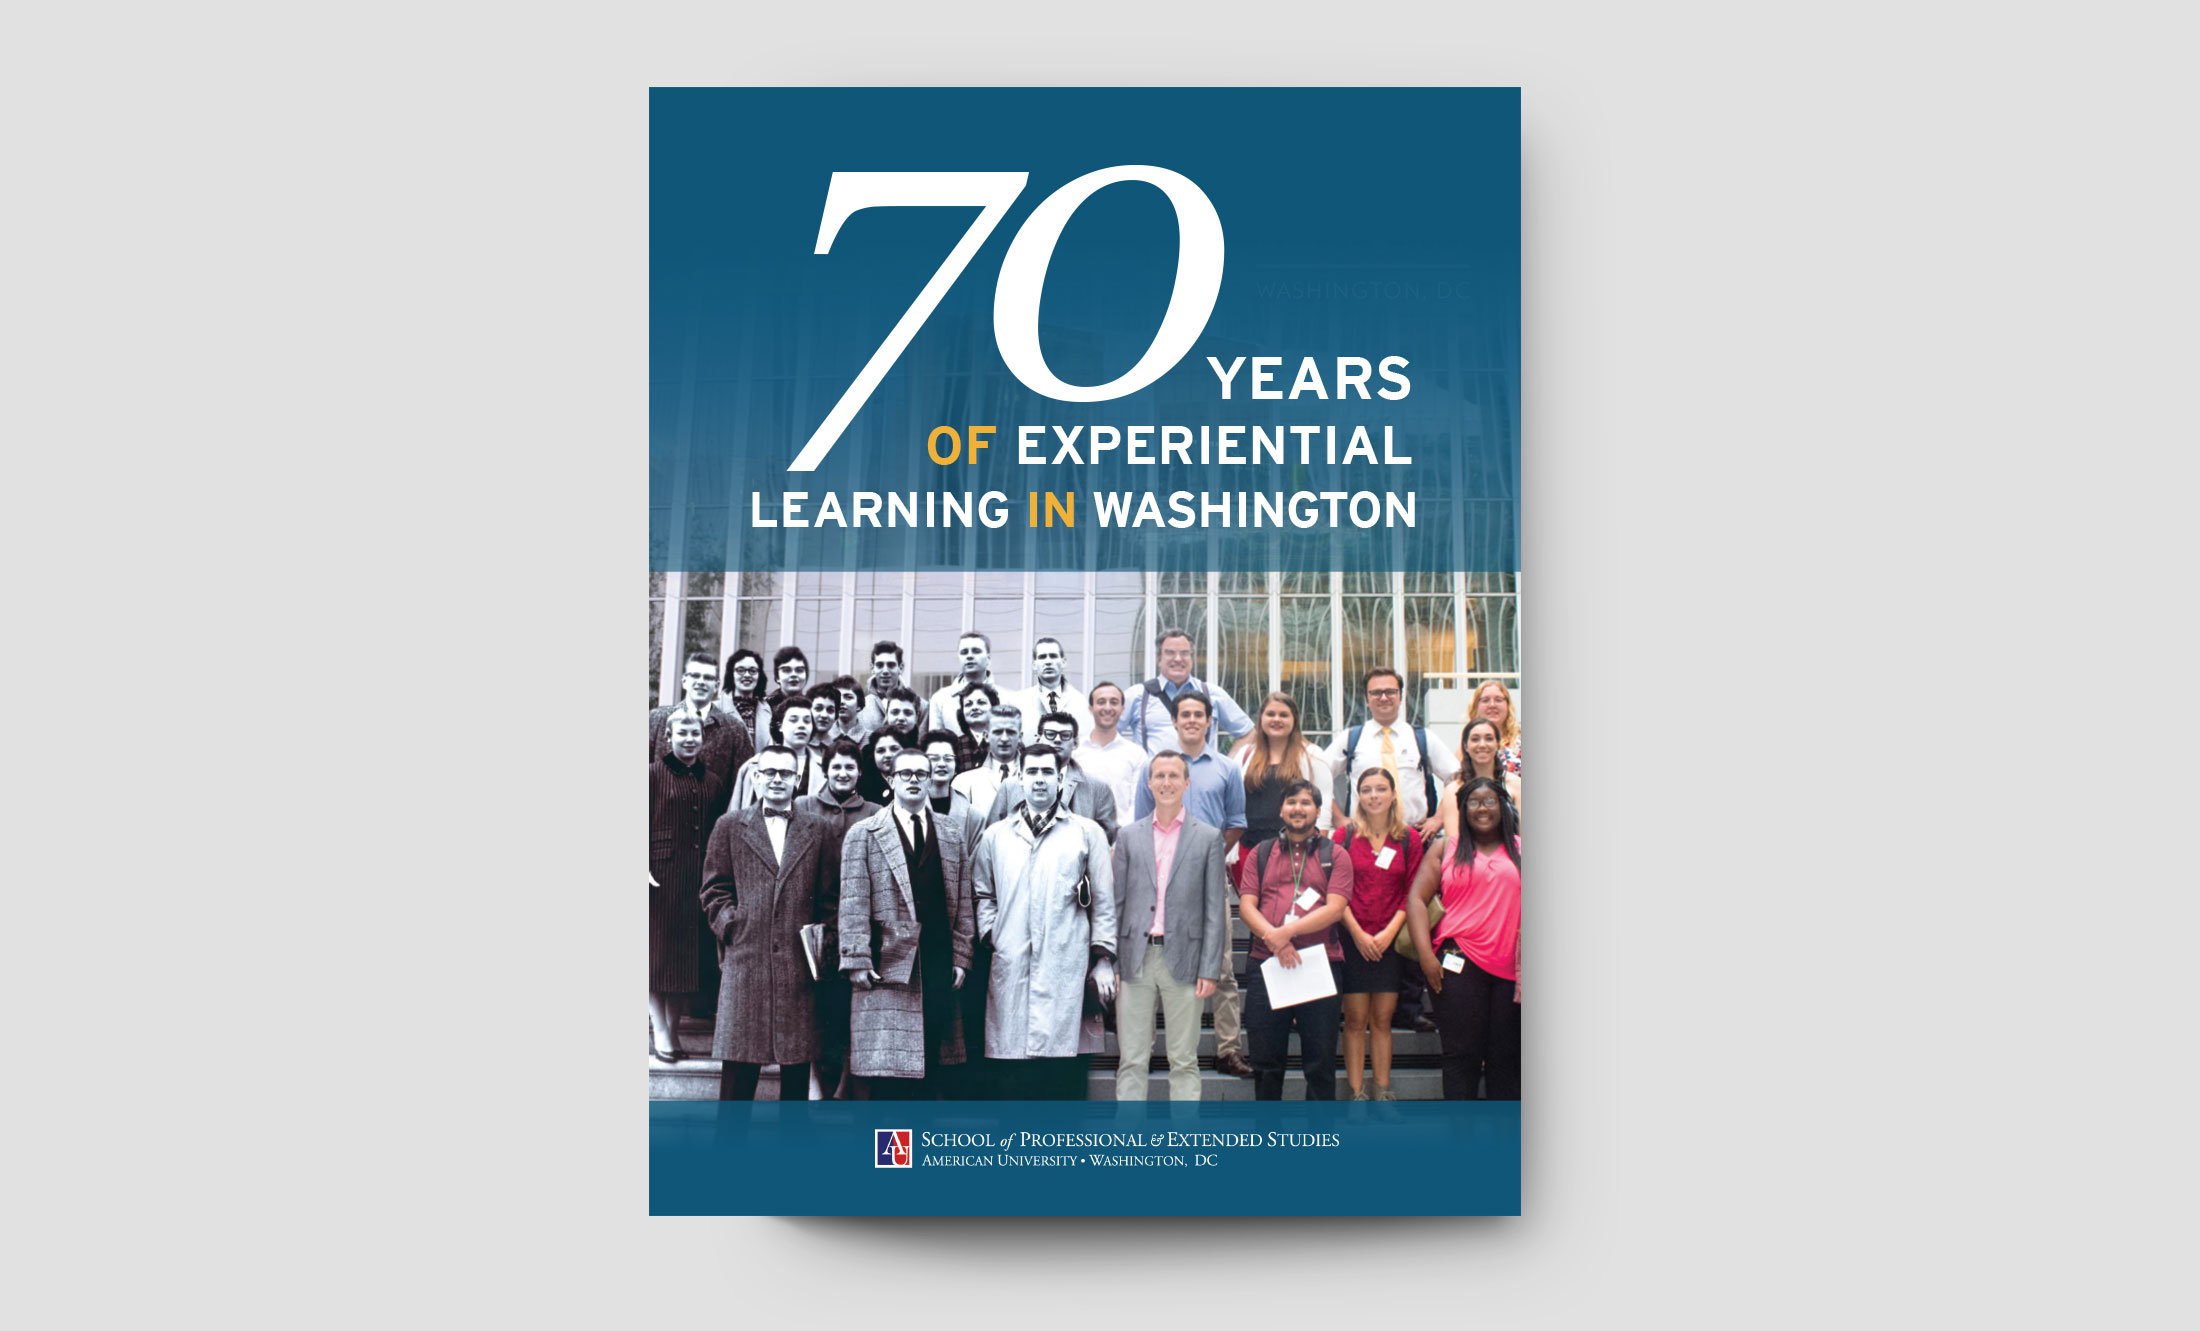 American university school of professional extended studies with a track record for leading edge experiential learning the american university school of professional extended studies combines academic rigor with stopboris Gallery